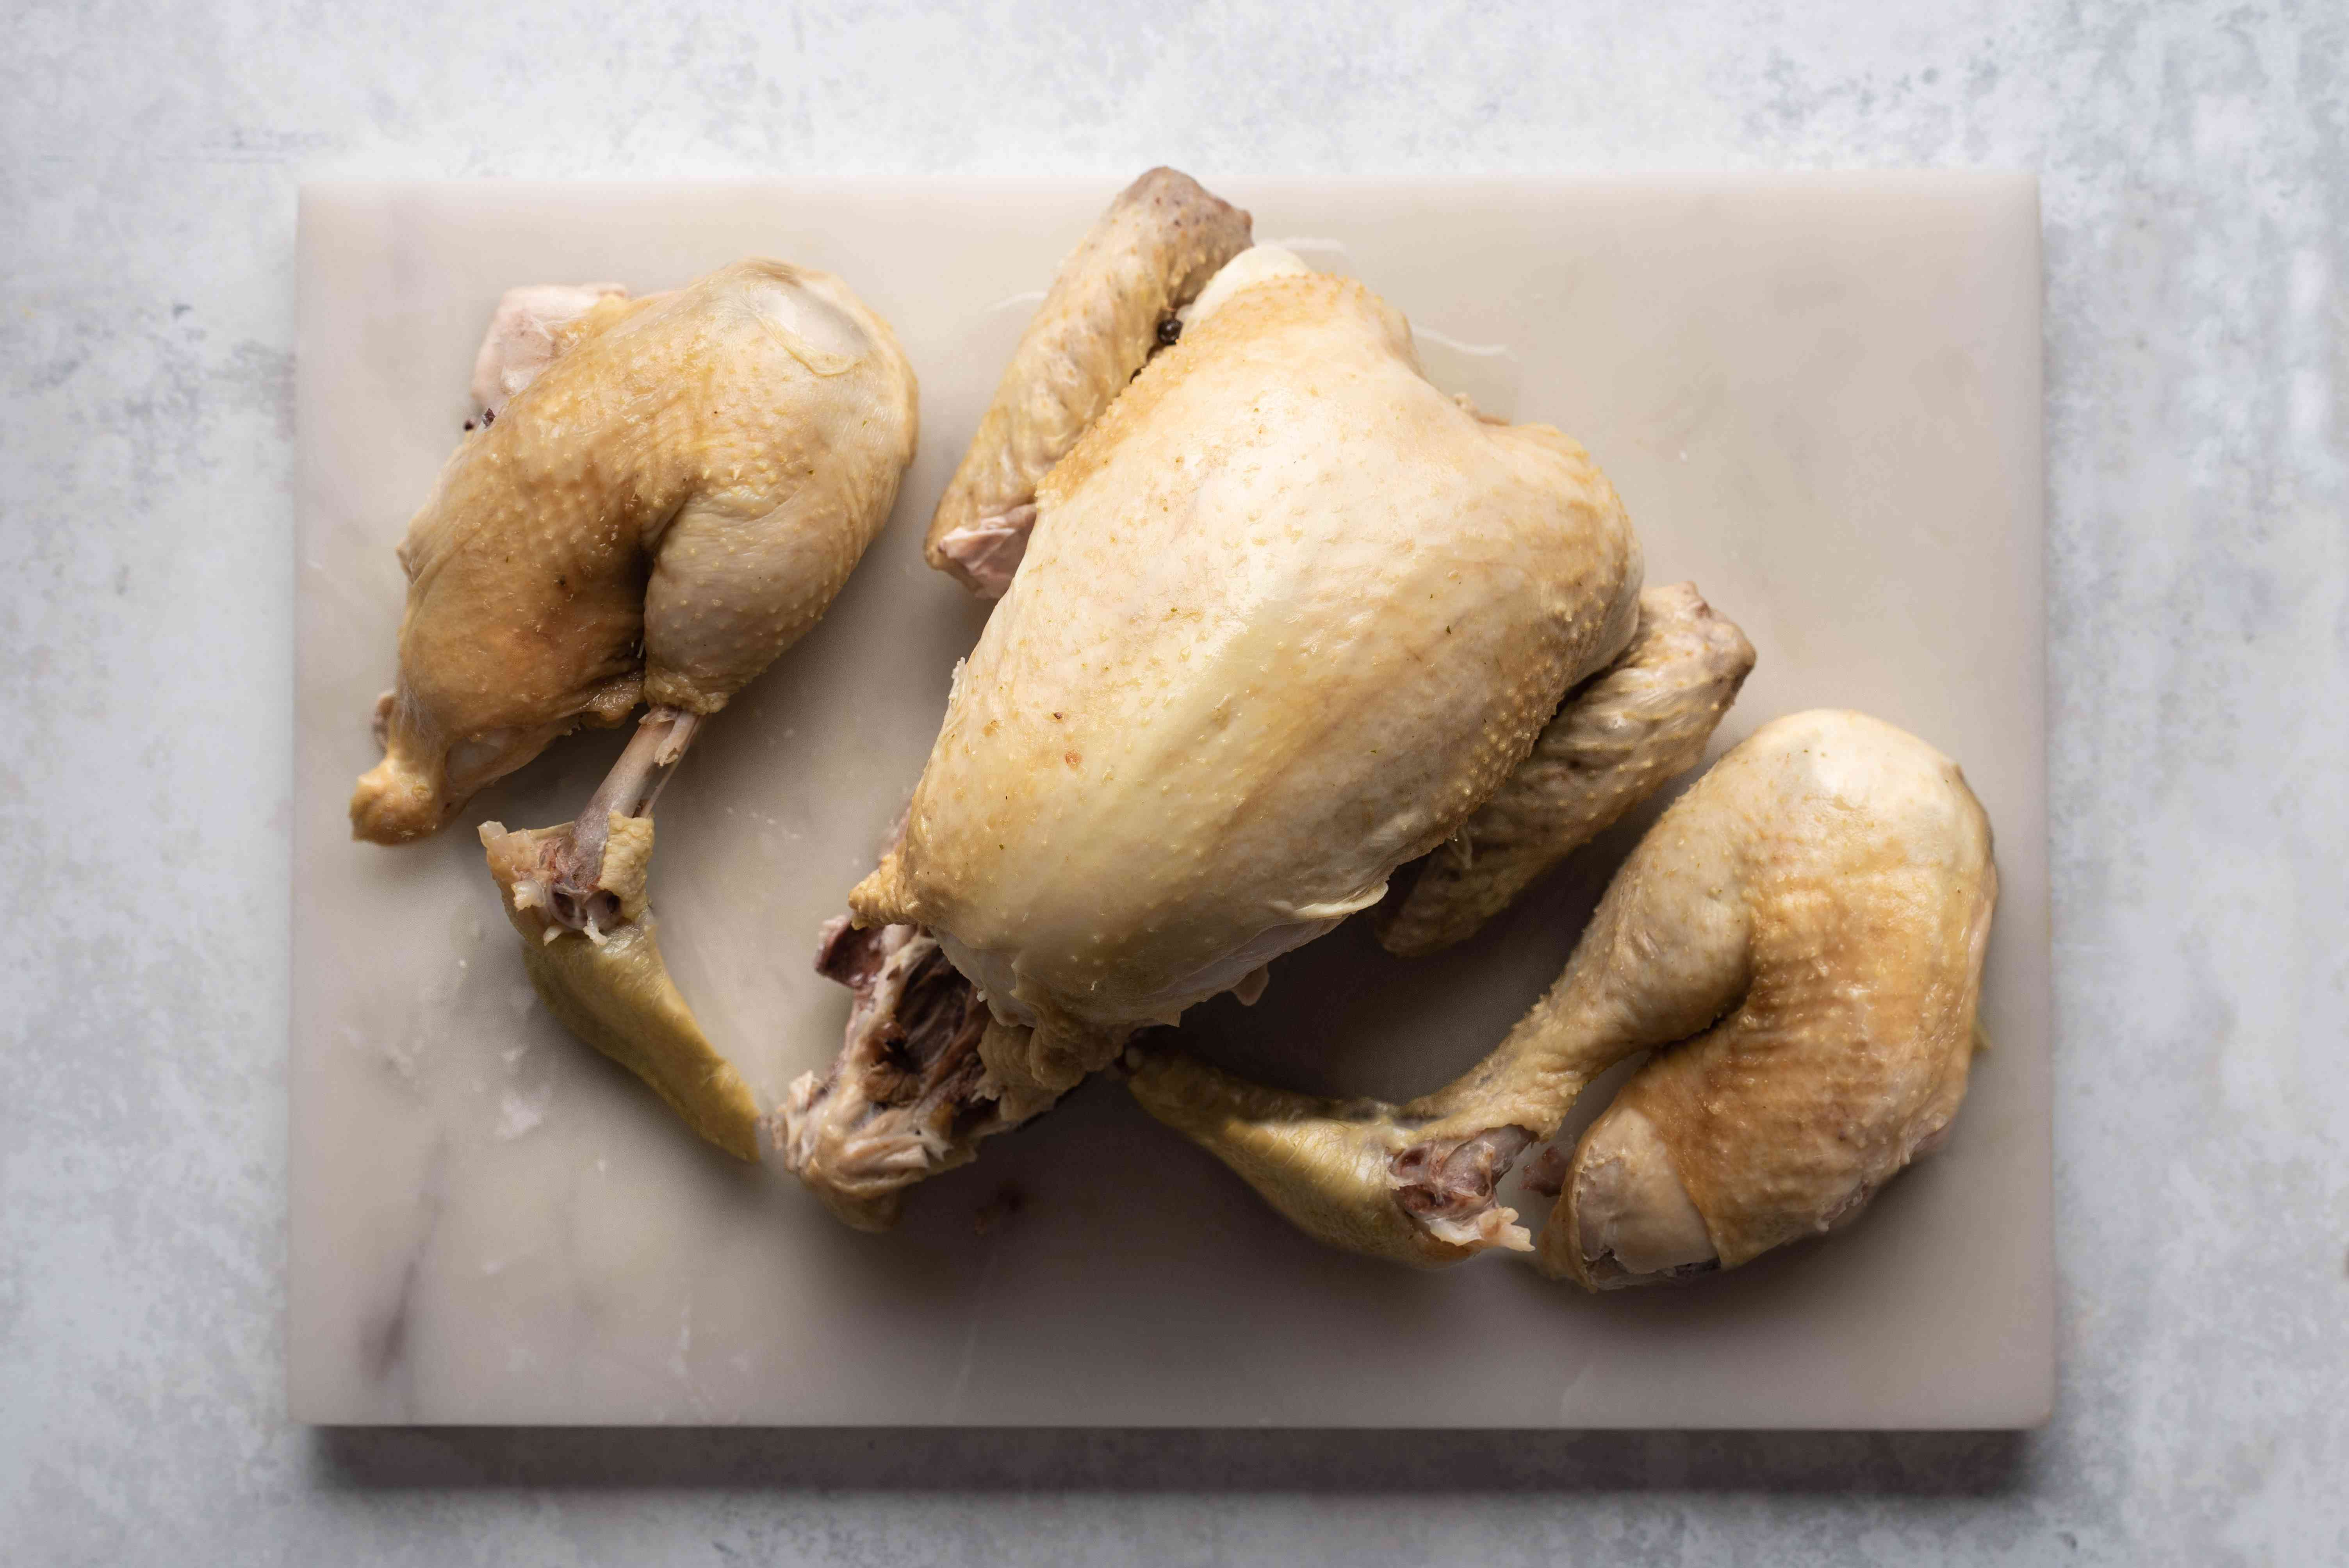 chicken with legs removed